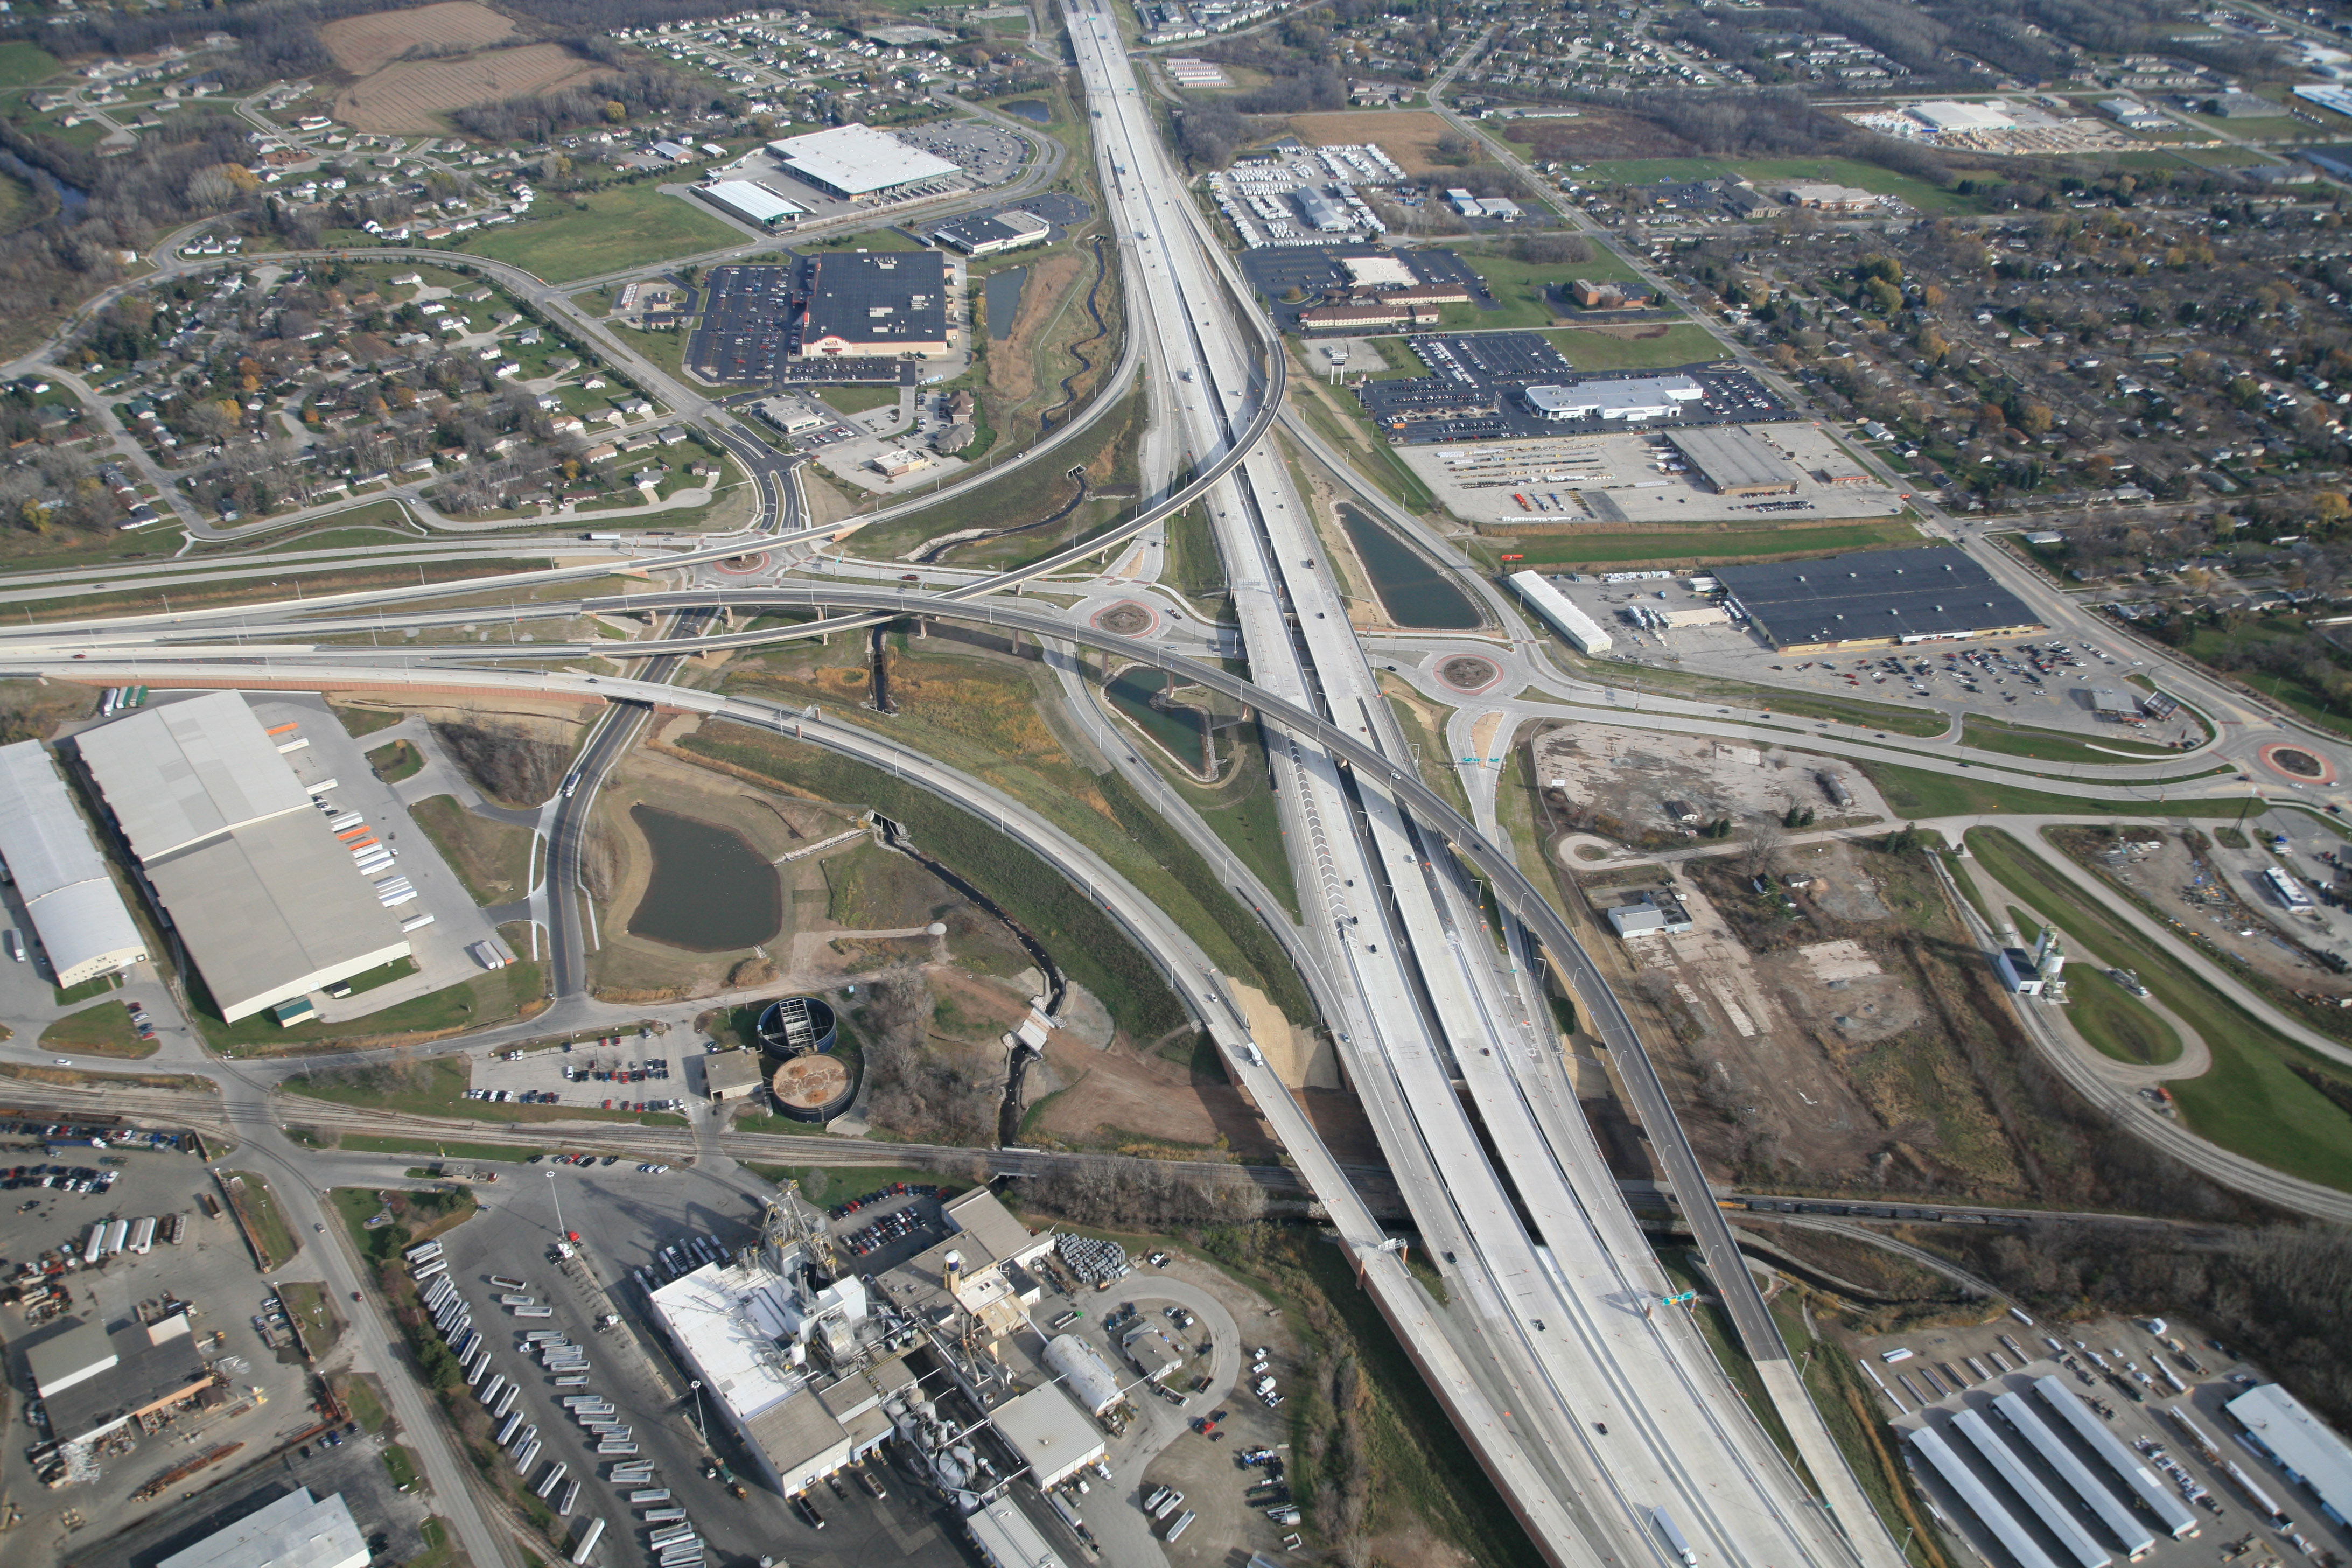 The reconstruction of a major interstate highway by sheer nature of its duration and impacts challenged the design team to look closely and specifically at each individual interchange. Carefully combining unique community identity features and themes with an overall corridor design delivered a project that is cohesive and yet reflective of each individual communities it accesses.